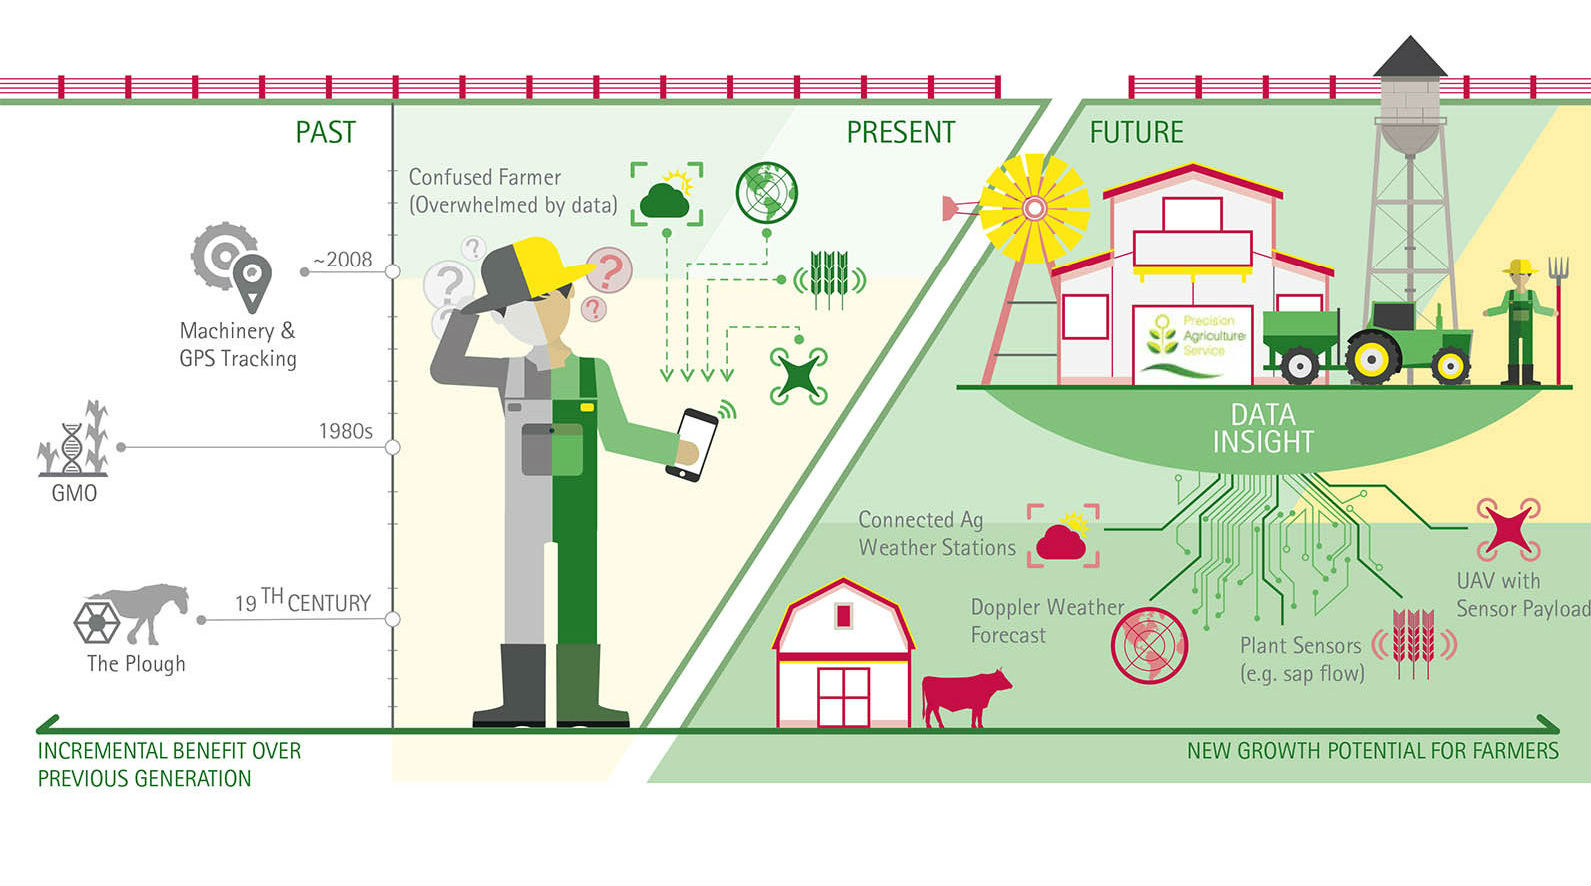 evolution of digital agriculture, source: accenture